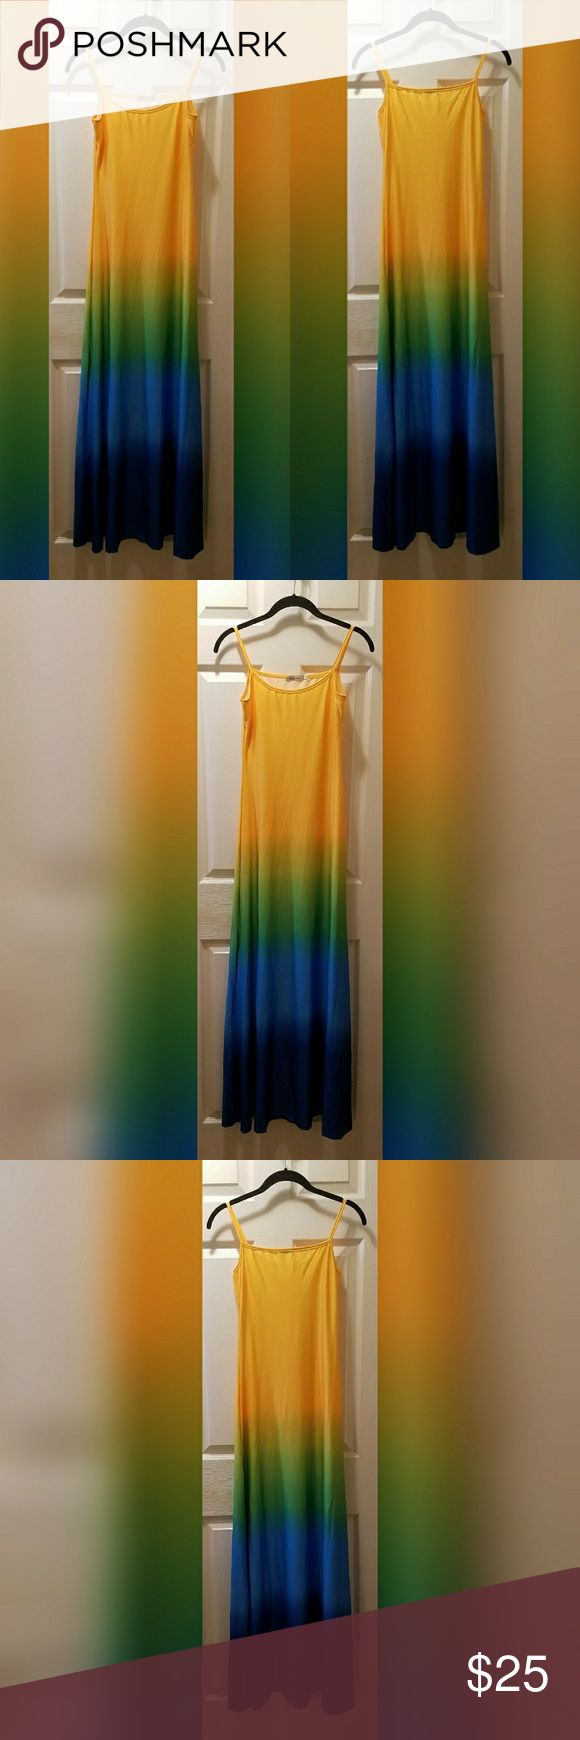 NWOT Tie Dye Maxi Dress NWOT cute maxi dress in yellow, green, and blue tie dye design. Says size S but fits like an XS. Dresses Maxi